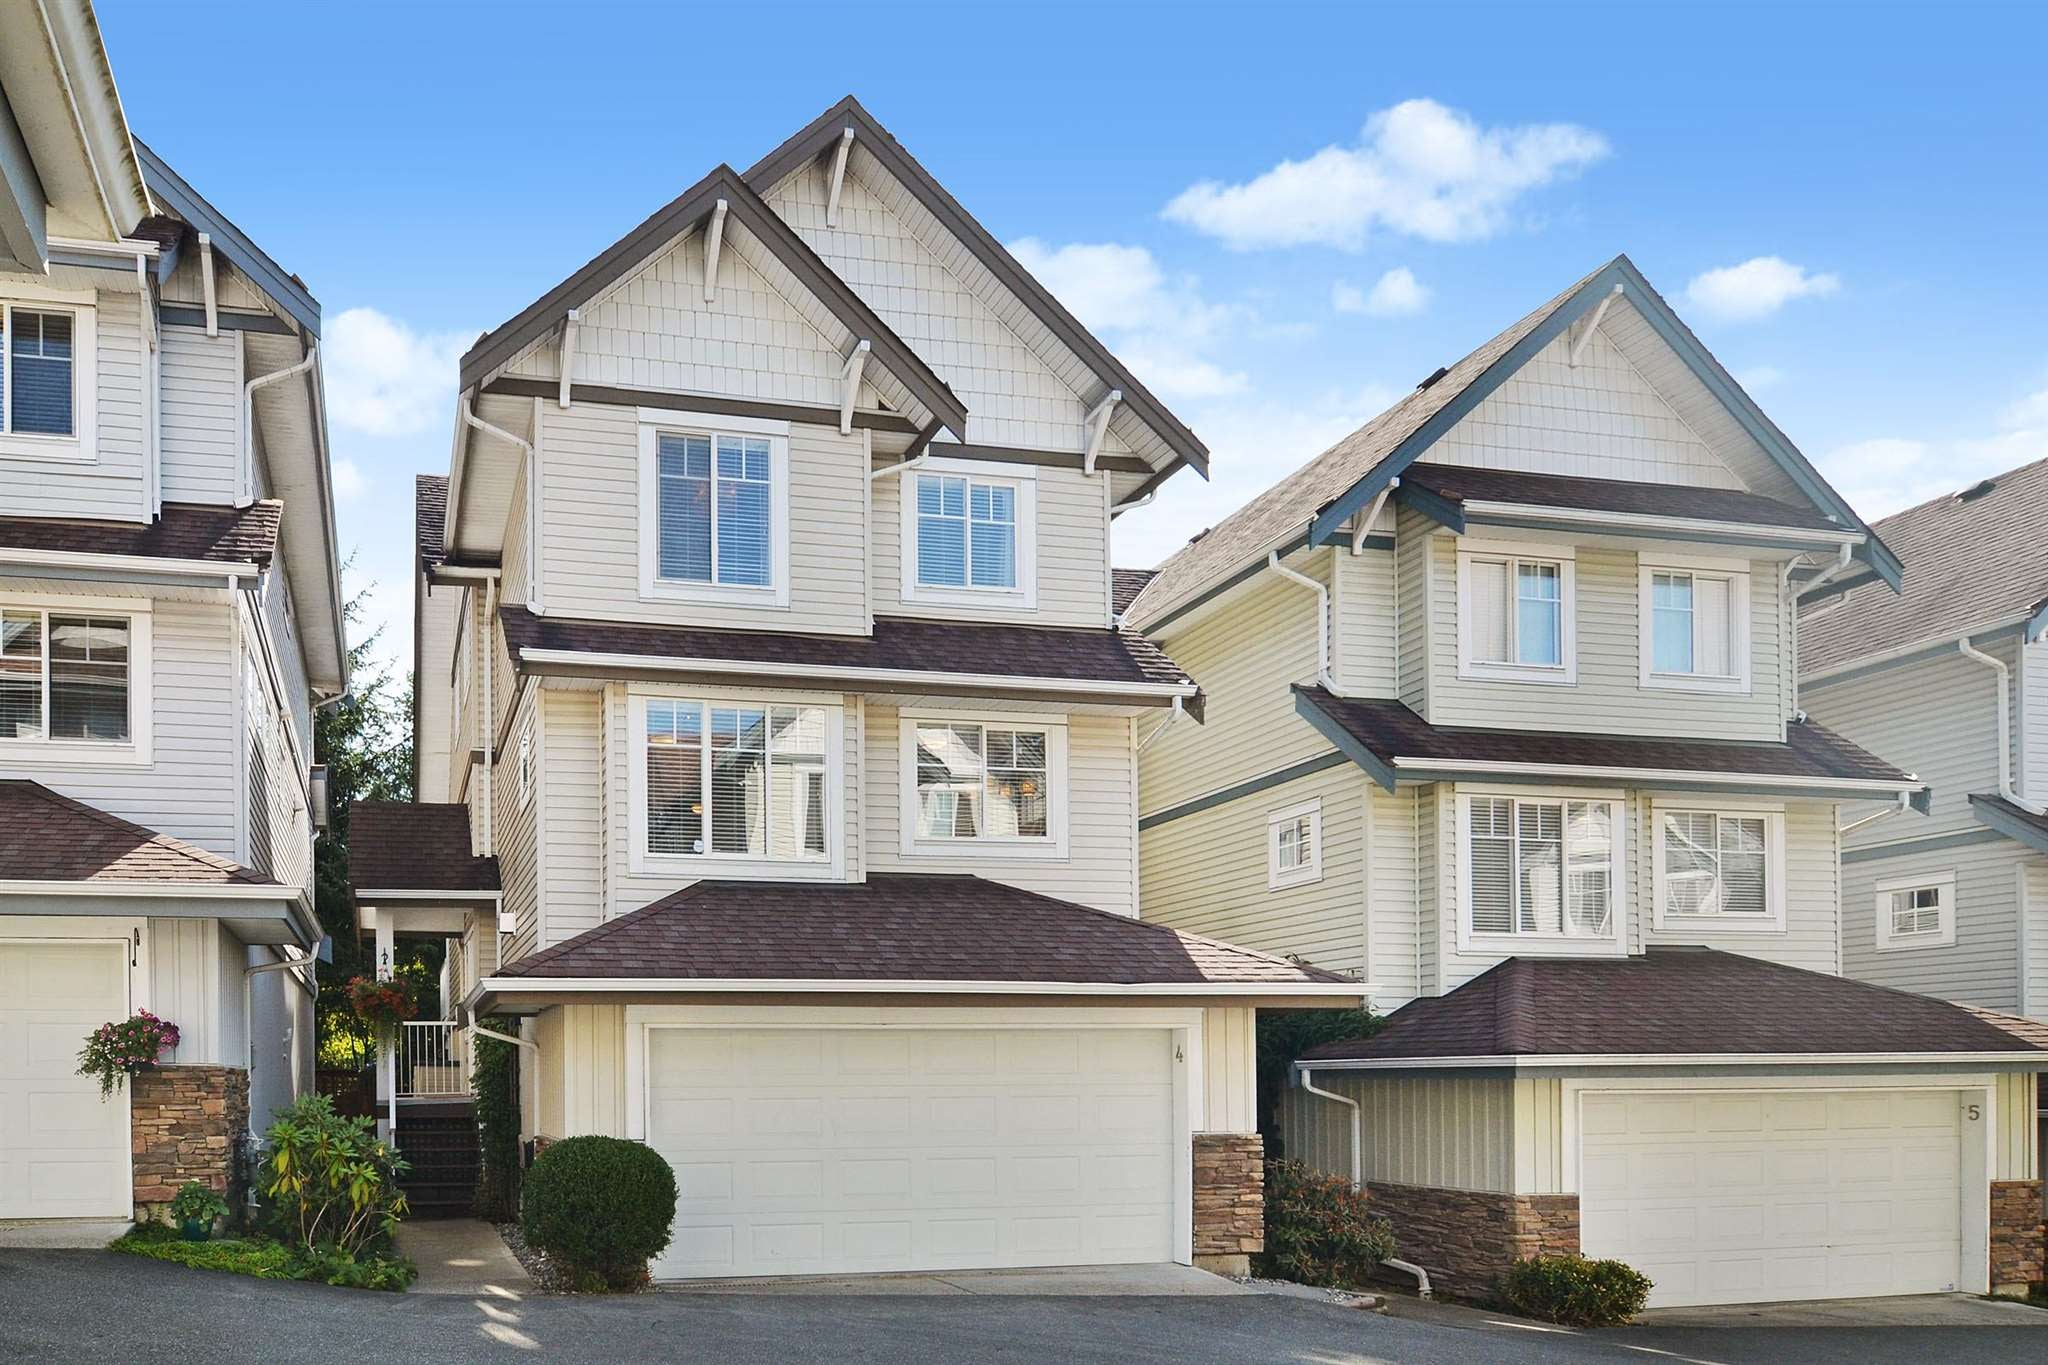 4 20582 67 AVENUE - Willoughby Heights Townhouse for sale, 4 Bedrooms (R2605328) - #1